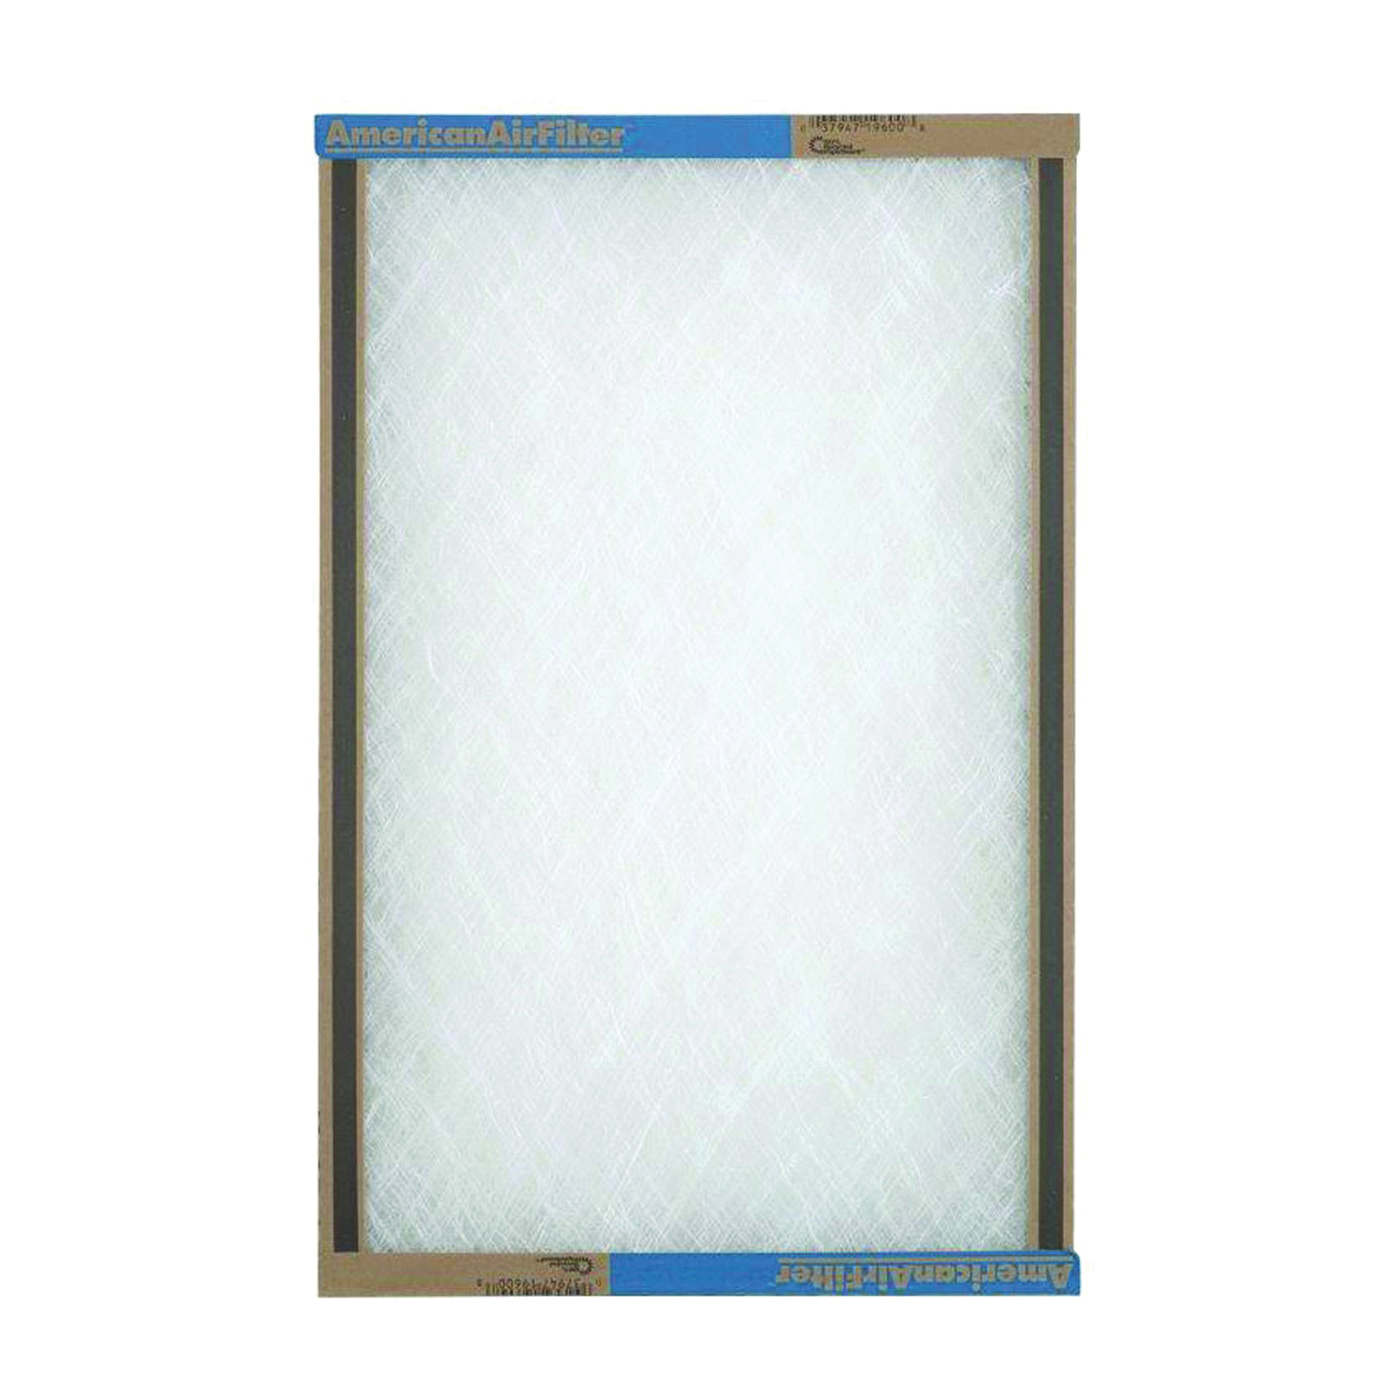 Picture of AAF 116301 Air Filter, 30 in L, 16 in W